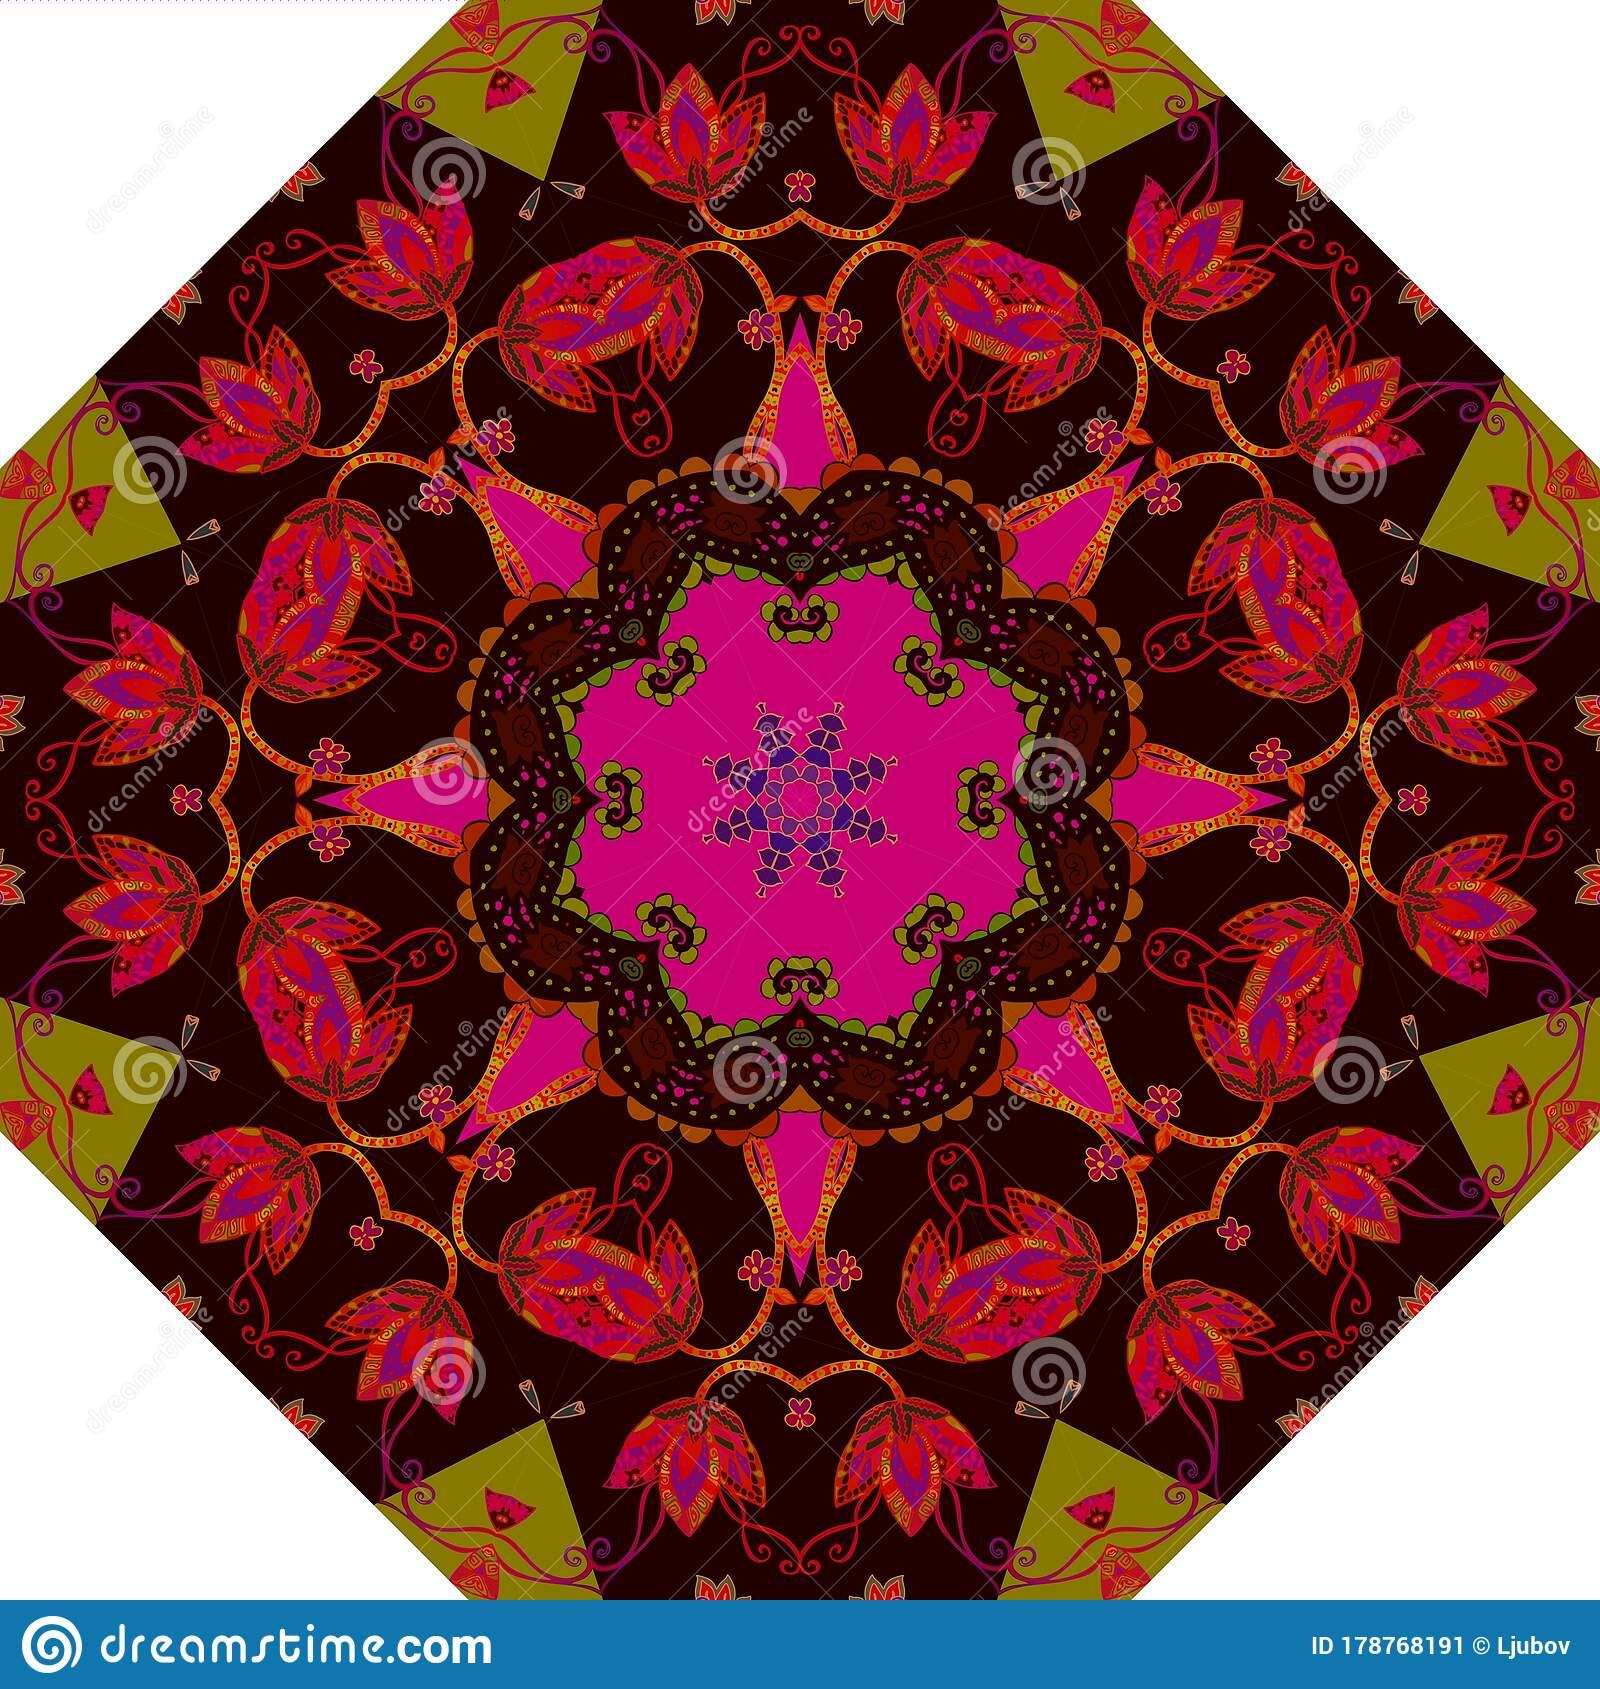 Picture of: Umbrella Print With Bright Floral Ornament Octagonal Pattern Rug Carpet Stock Vector Illustration Of Artwork Ornament 178768191